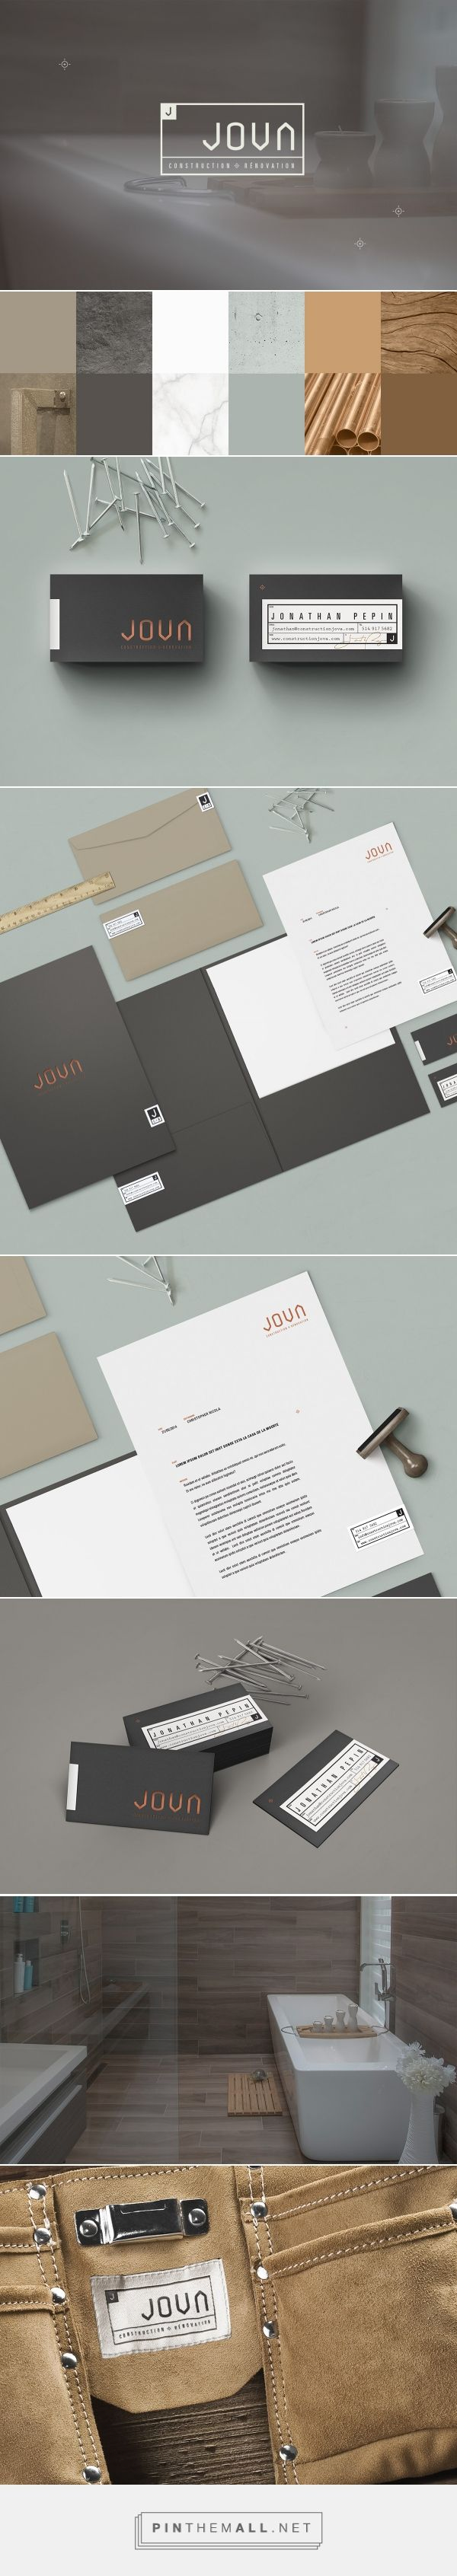 Jova Construction Branding by Phoenix the Creative Studio | Fivestar Branding Agency – Design and Branding Agency & Curated Inspiration Gallery